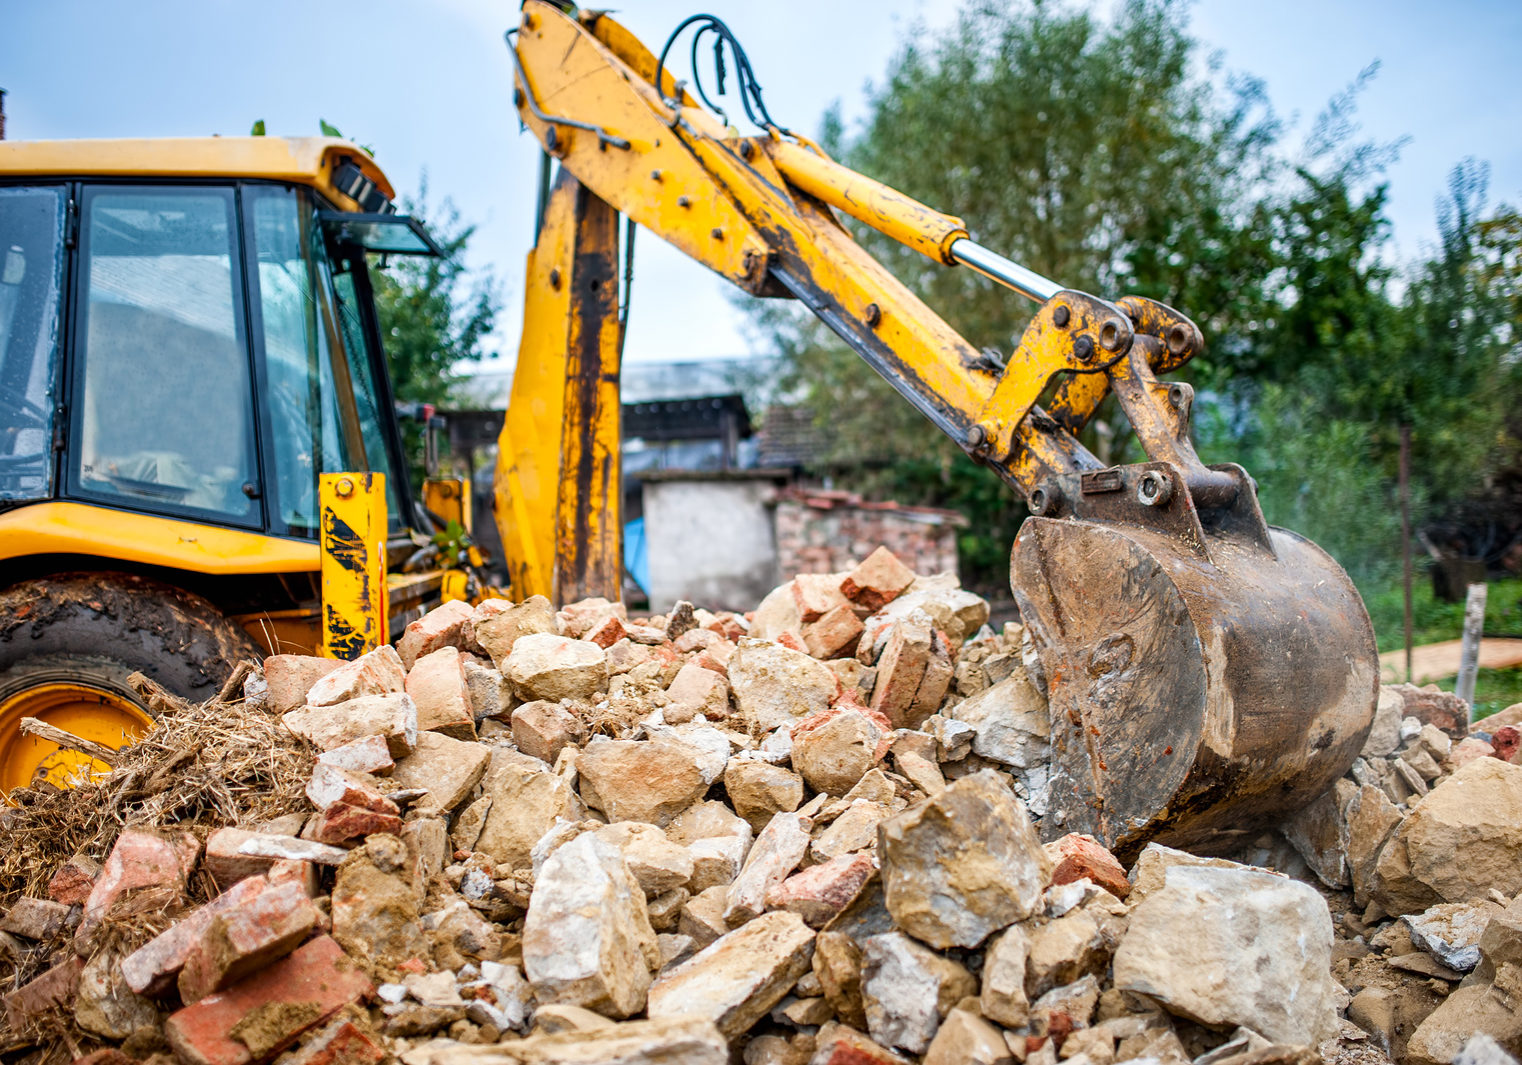 industrial hydraulic excavator on construction and demolition site recycling construction waste with bulldozer